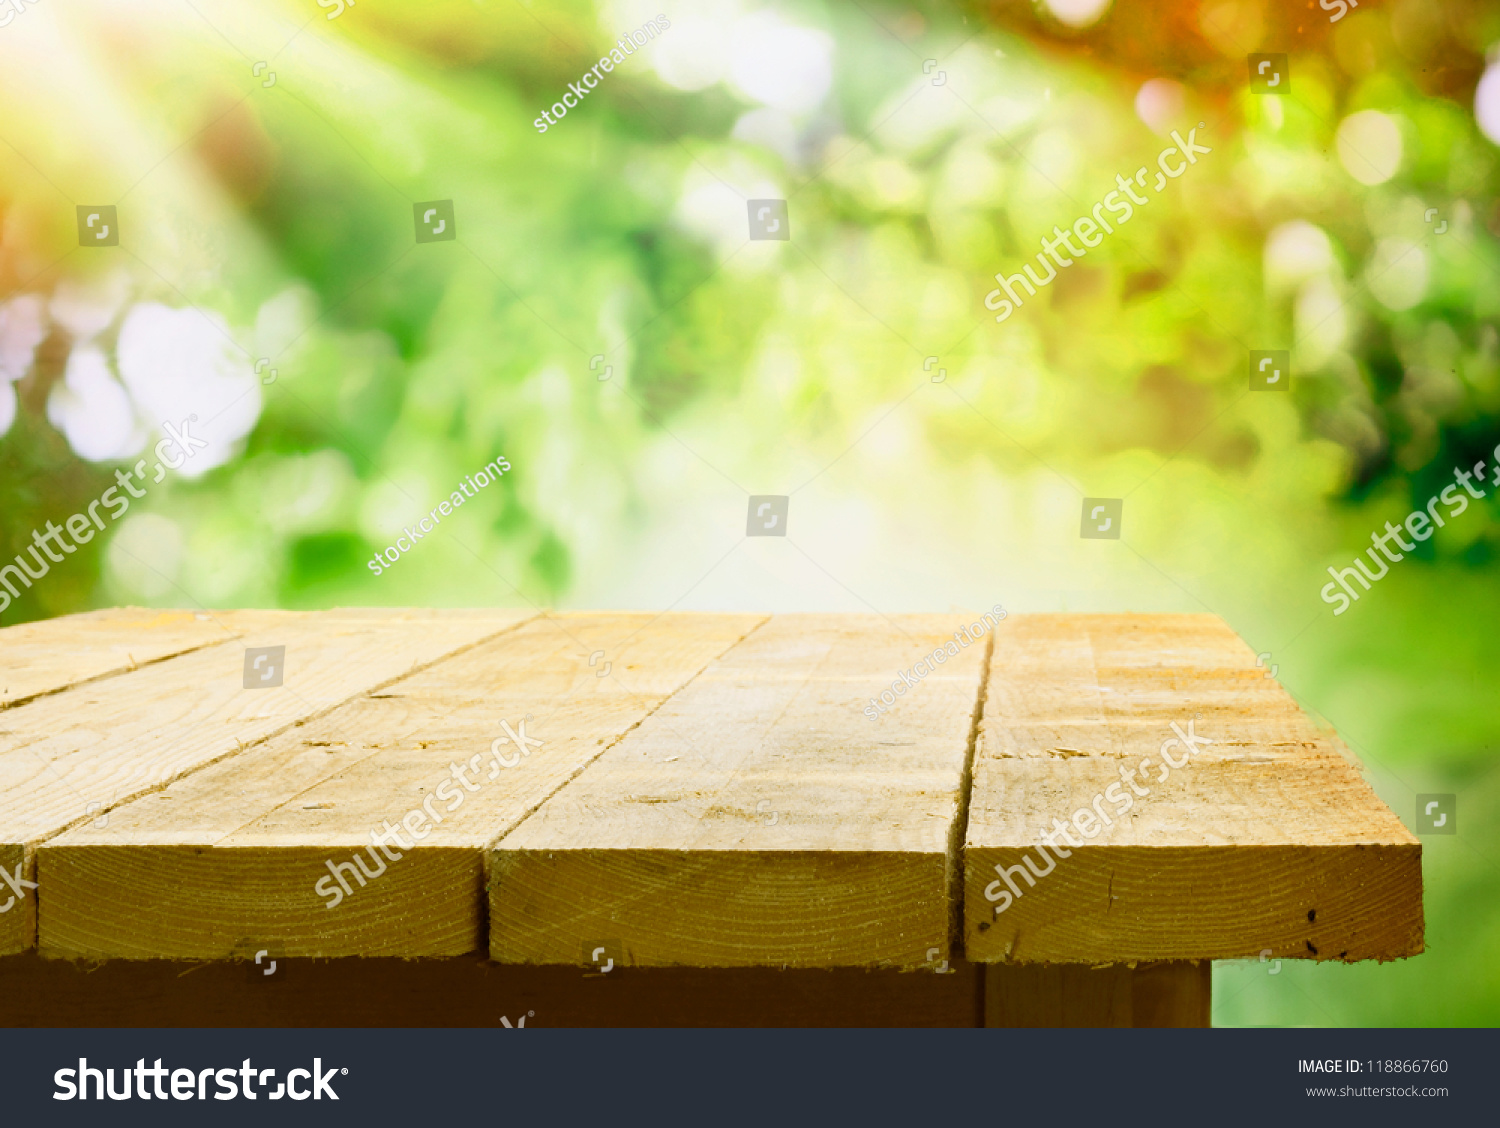 Background image table - Empty Wooden Table With Garden Bokeh For A Catering Or Food Background With A Country Outdoor